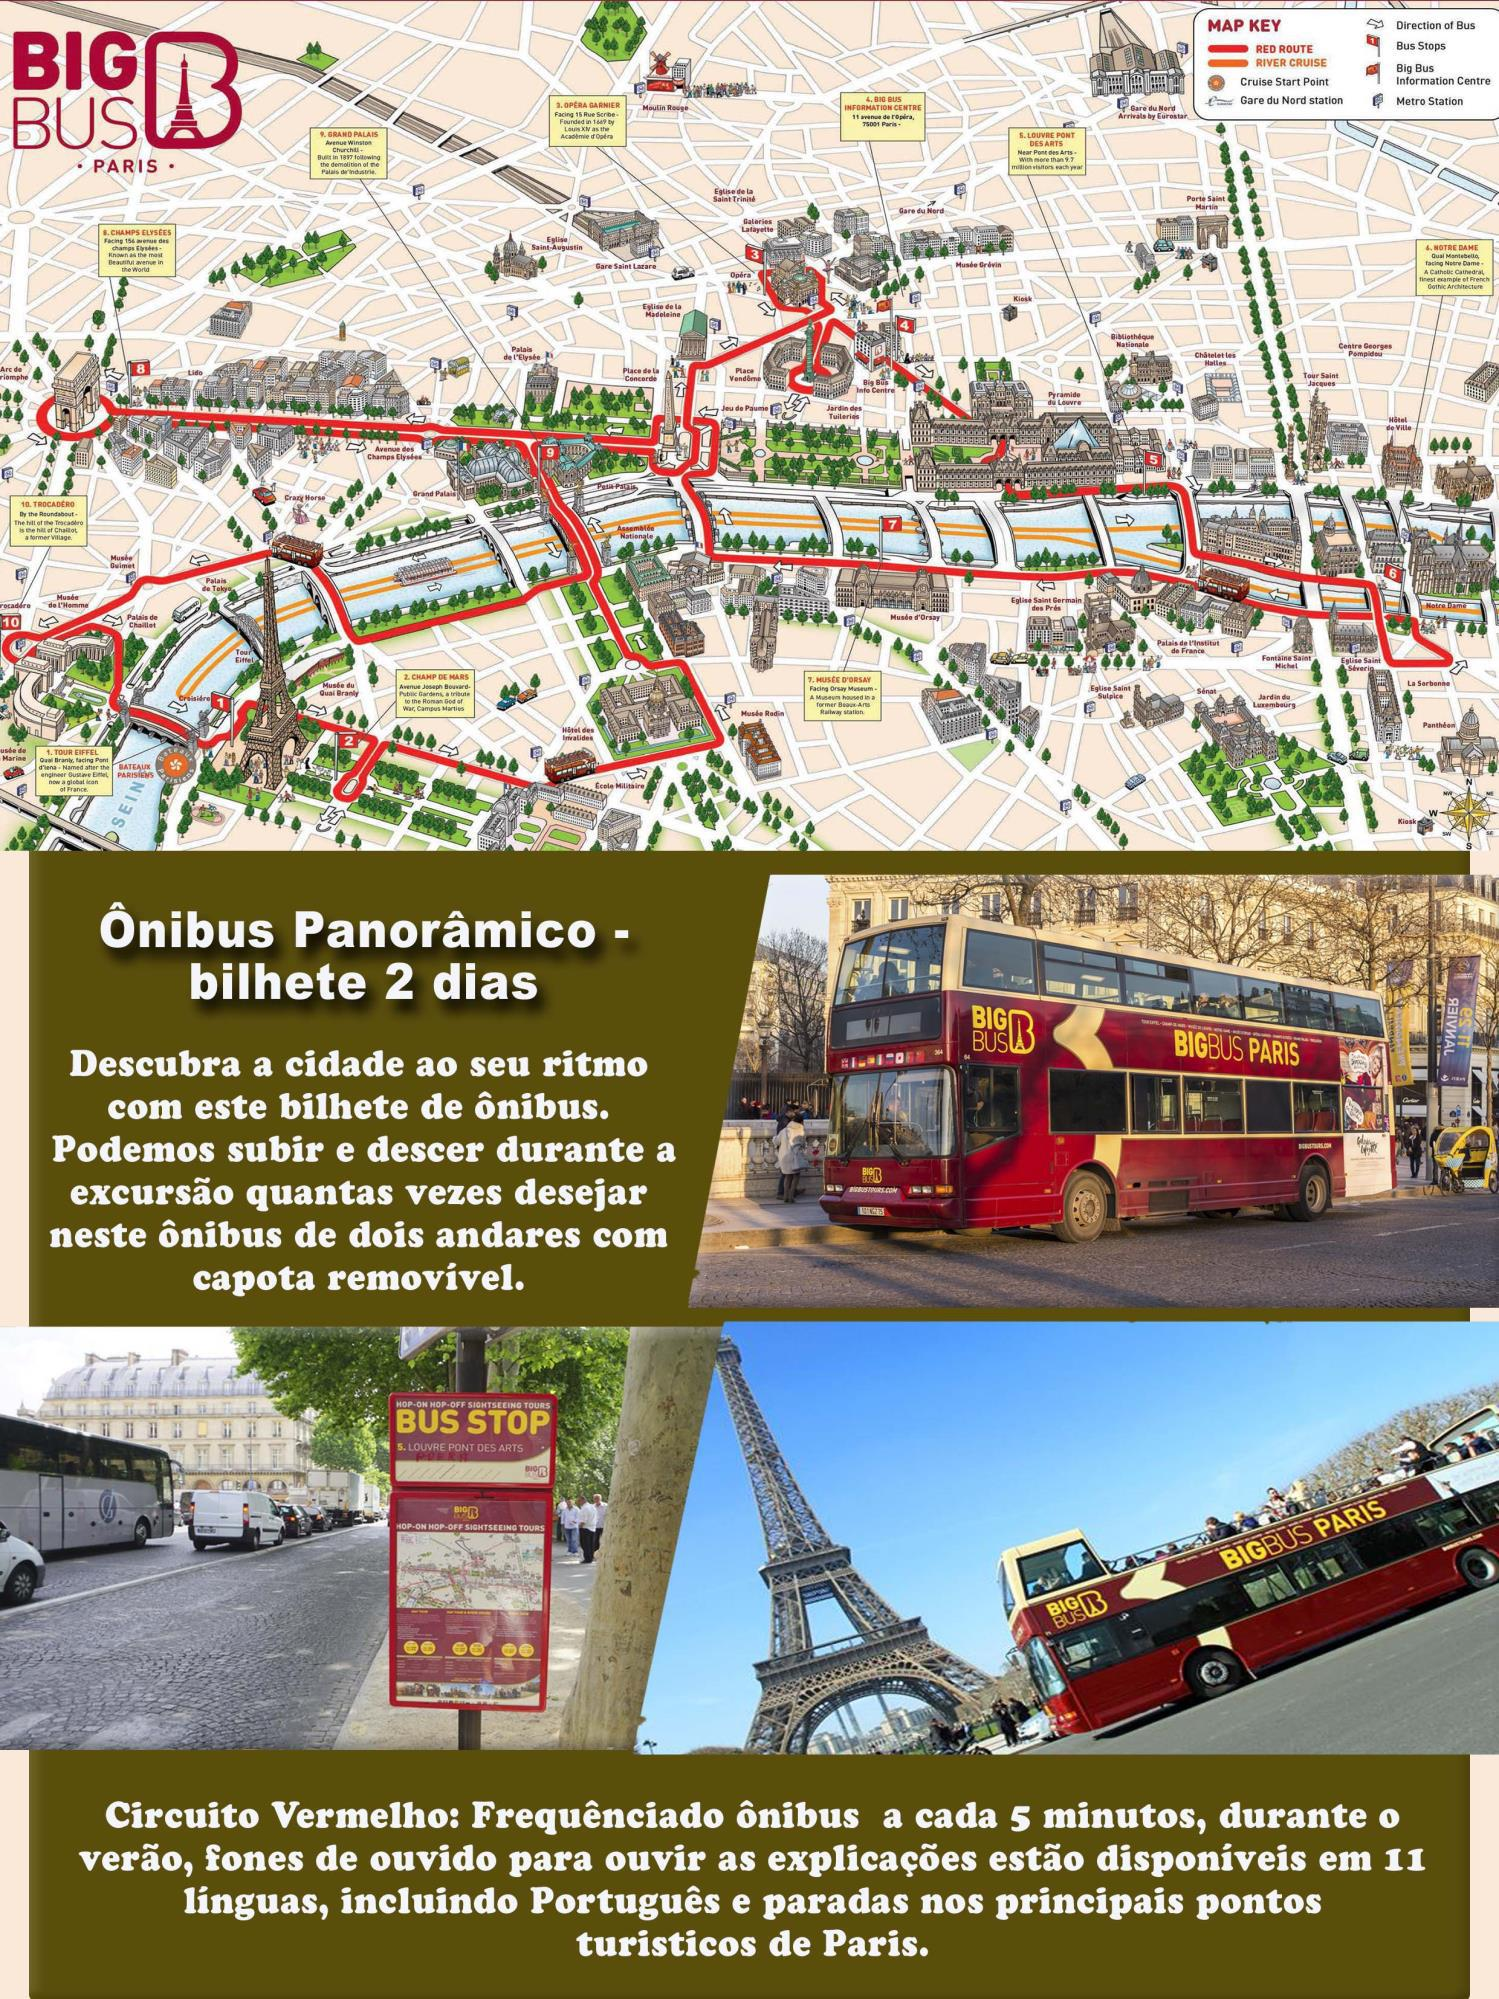 Grupo Disney Londres e Paris Outubro 2020 8